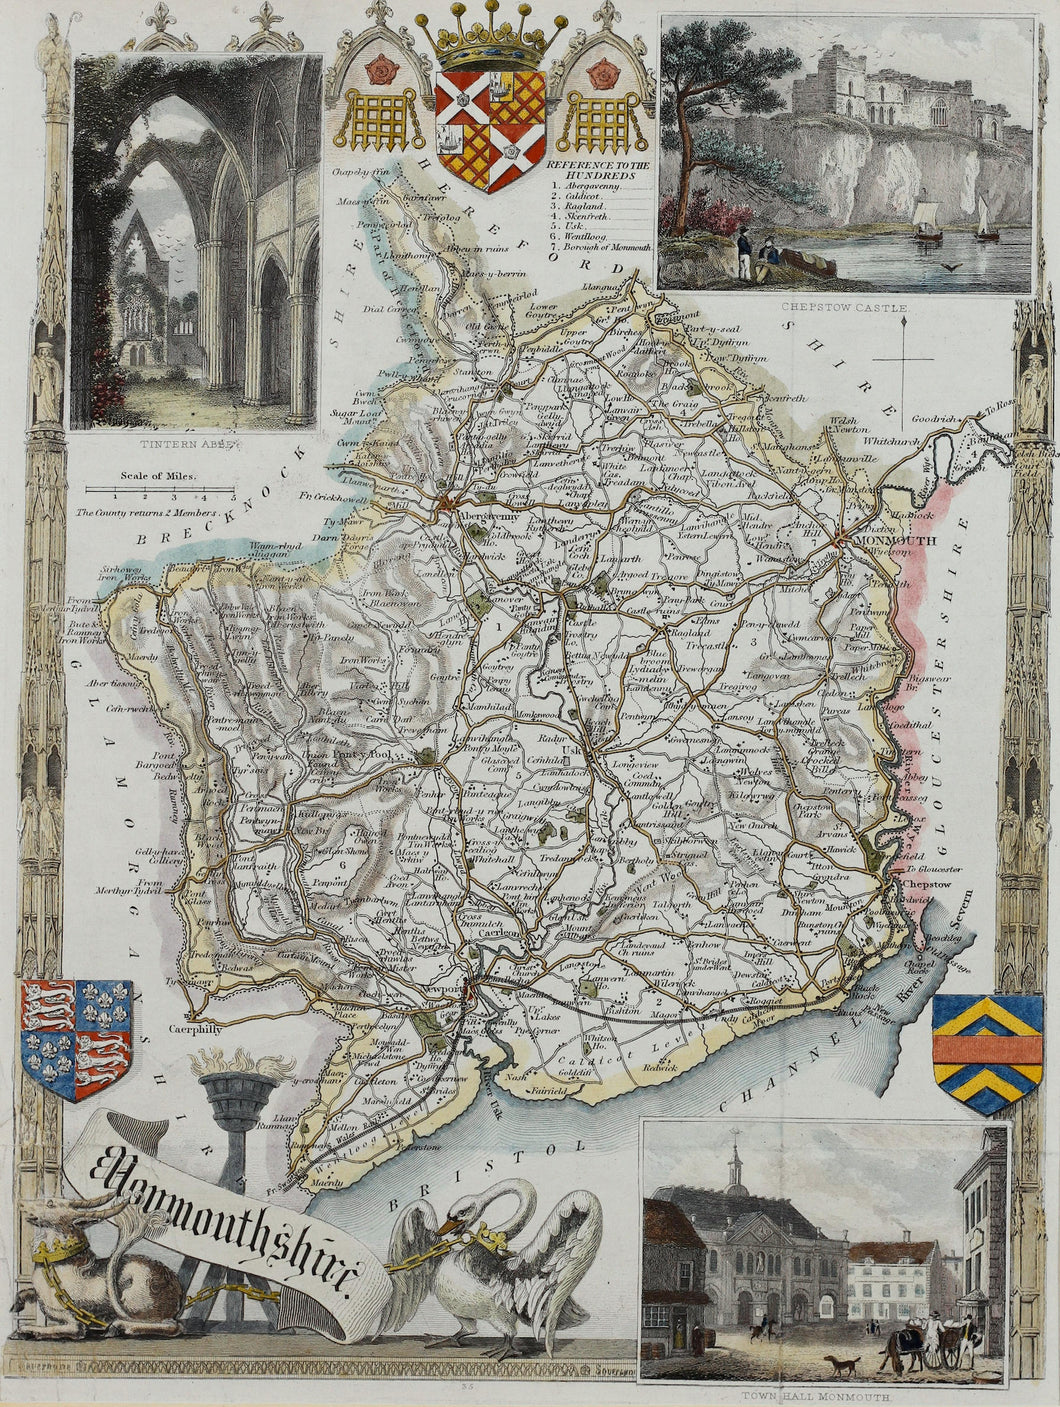 Monmouthshire - Antique Map by Thomas Moule circa 1848